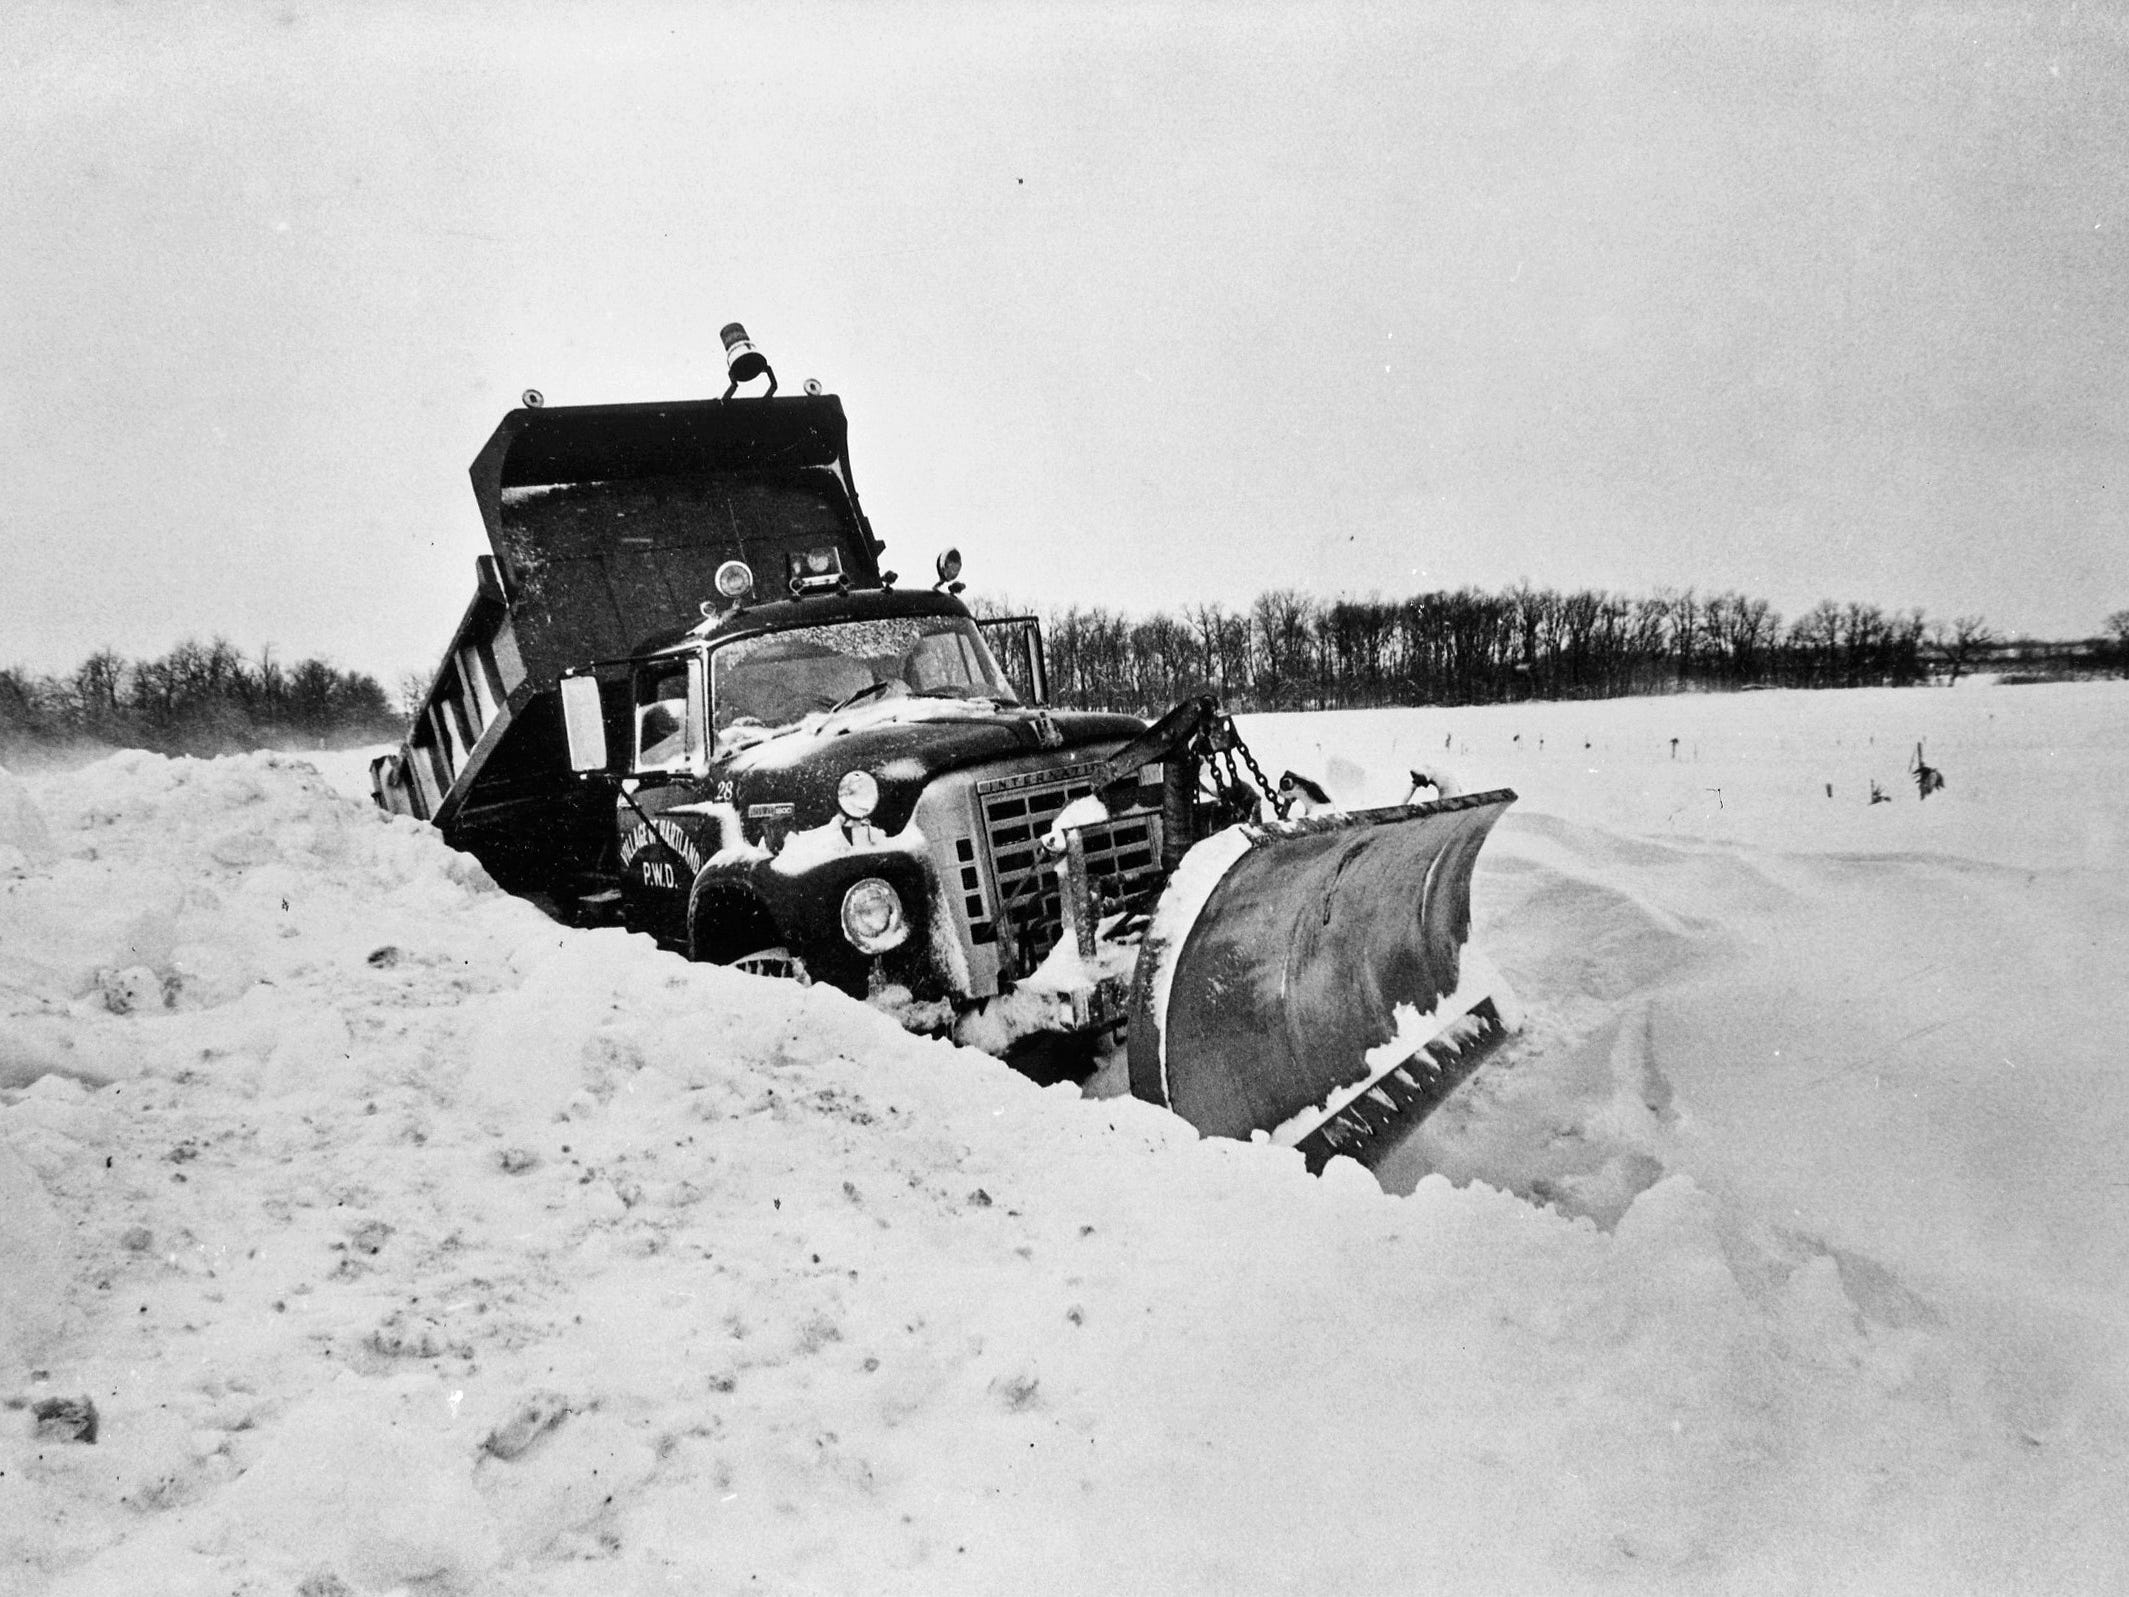 A Village of Hartland snowplow gets stuck trying to plow out Highway 83 north of Highway 16 on Jan. 24, 1979, during the third blizzard that hit the Milwaukee area that month. This photo was published in the Jan. 25, 1979, Milwaukee Journal.